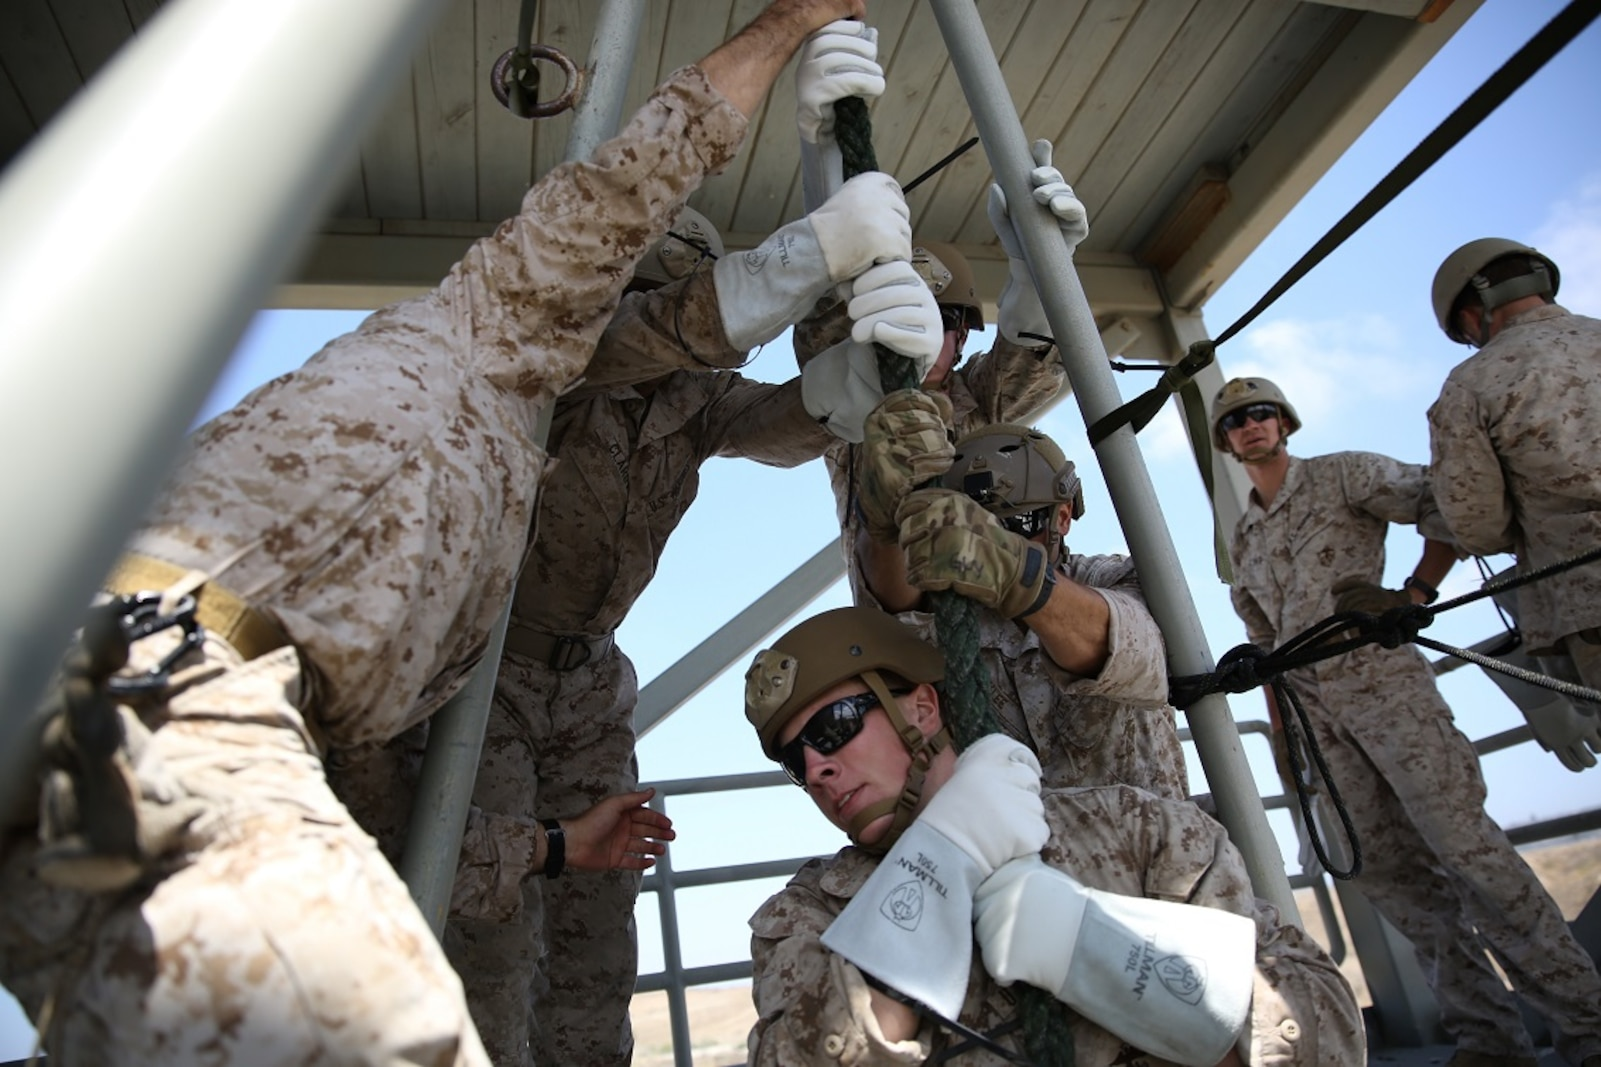 Marines assigned to Company A, 1st Reconnaissance Battalion, 1st Marine Division, prepare to fast-rope as a fire team aboard Marine Corps Base Camp Pendleton, Calif., Aug. 17, 2015. The Marines practiced fast-roping as a team to gain proficiency in order to effectively insert from a helicopter.